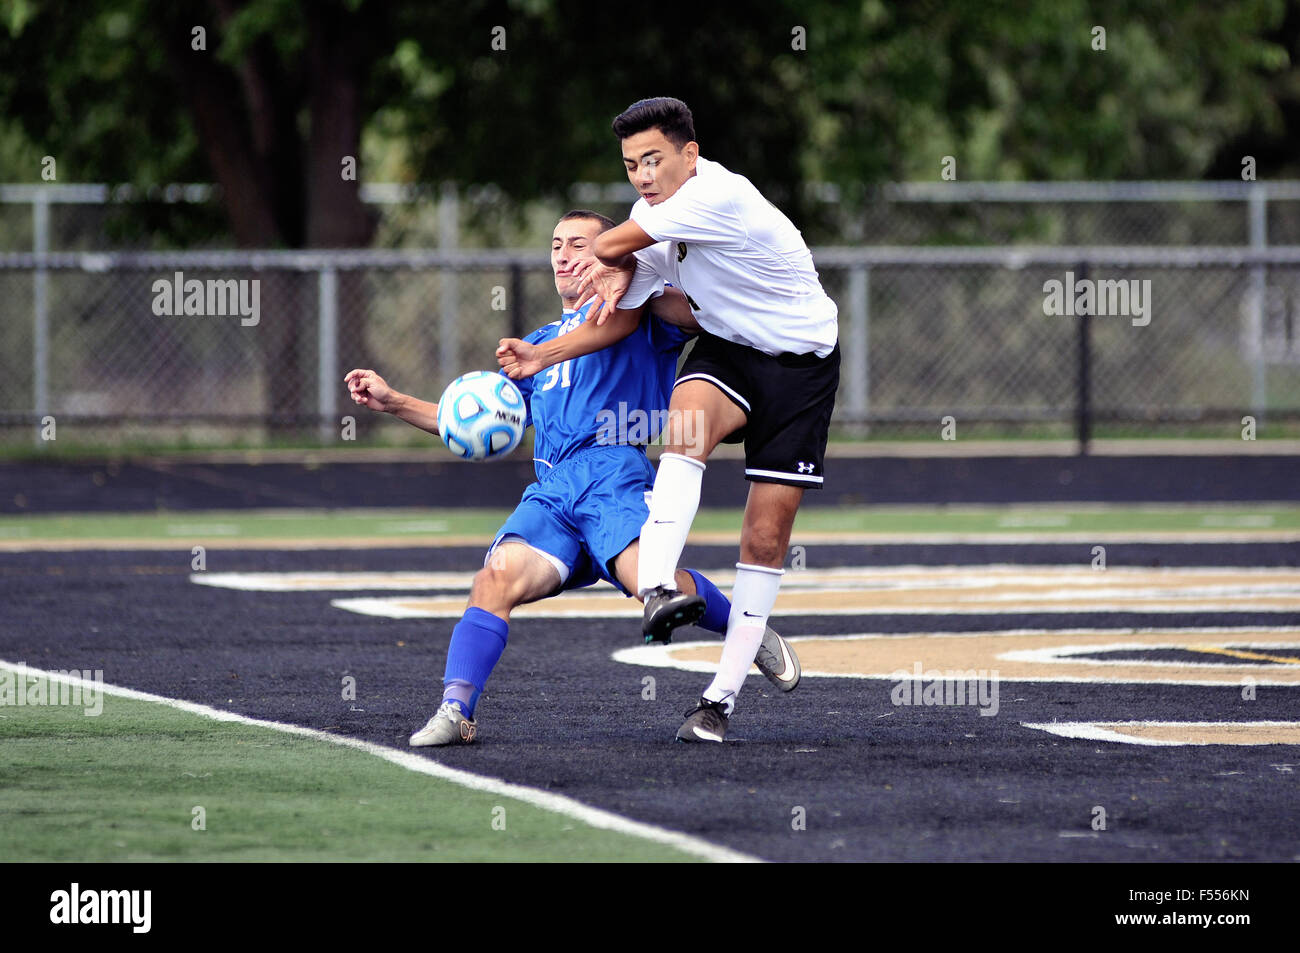 Pair of high school players making solid contact with as they battle for possession of the ball in the box in front - Stock Image